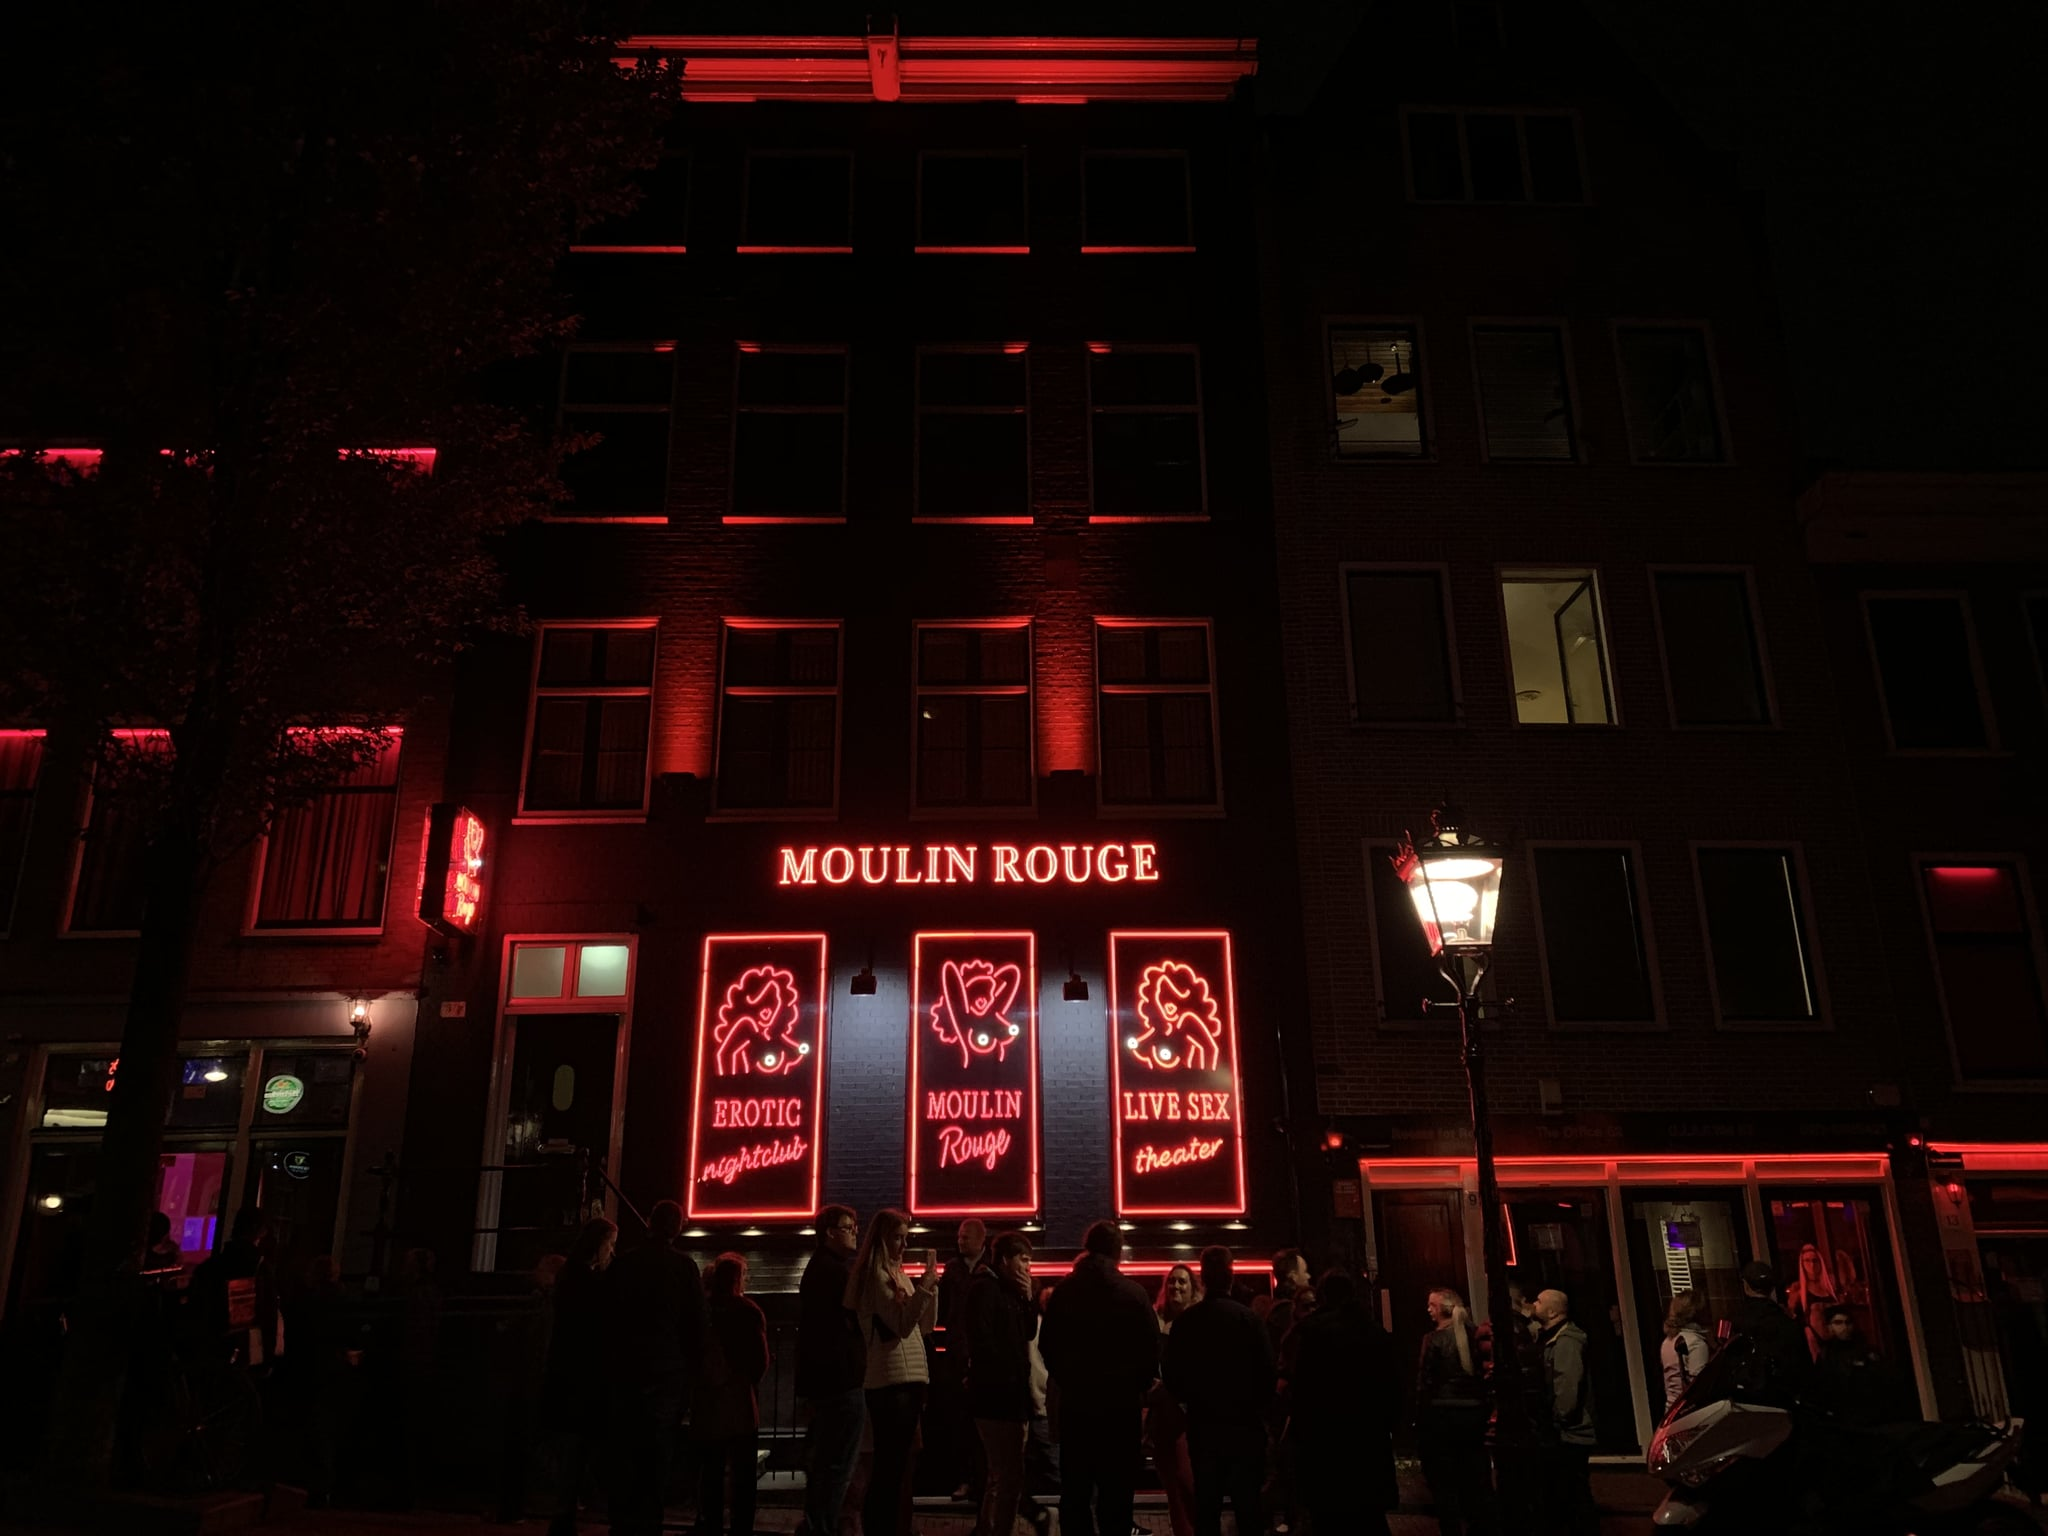 Moulin Rouge in the Red Light District of Amsterdam